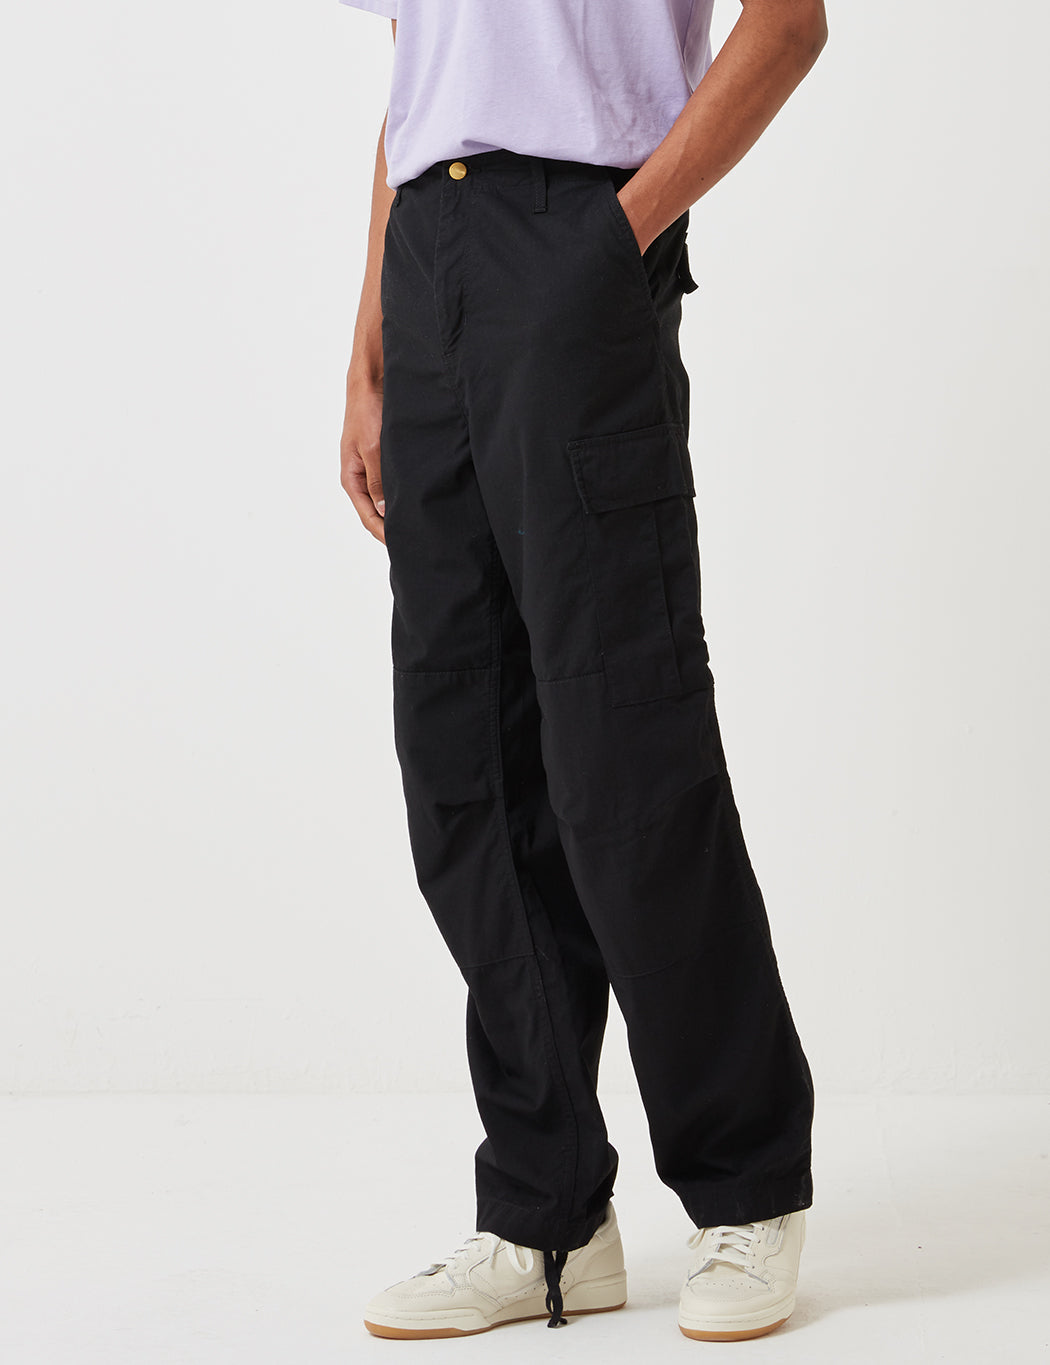 8fdf387d40e Carhartt Cargo Pants (Relaxed Fit) - Black| URBAN EXCESS.